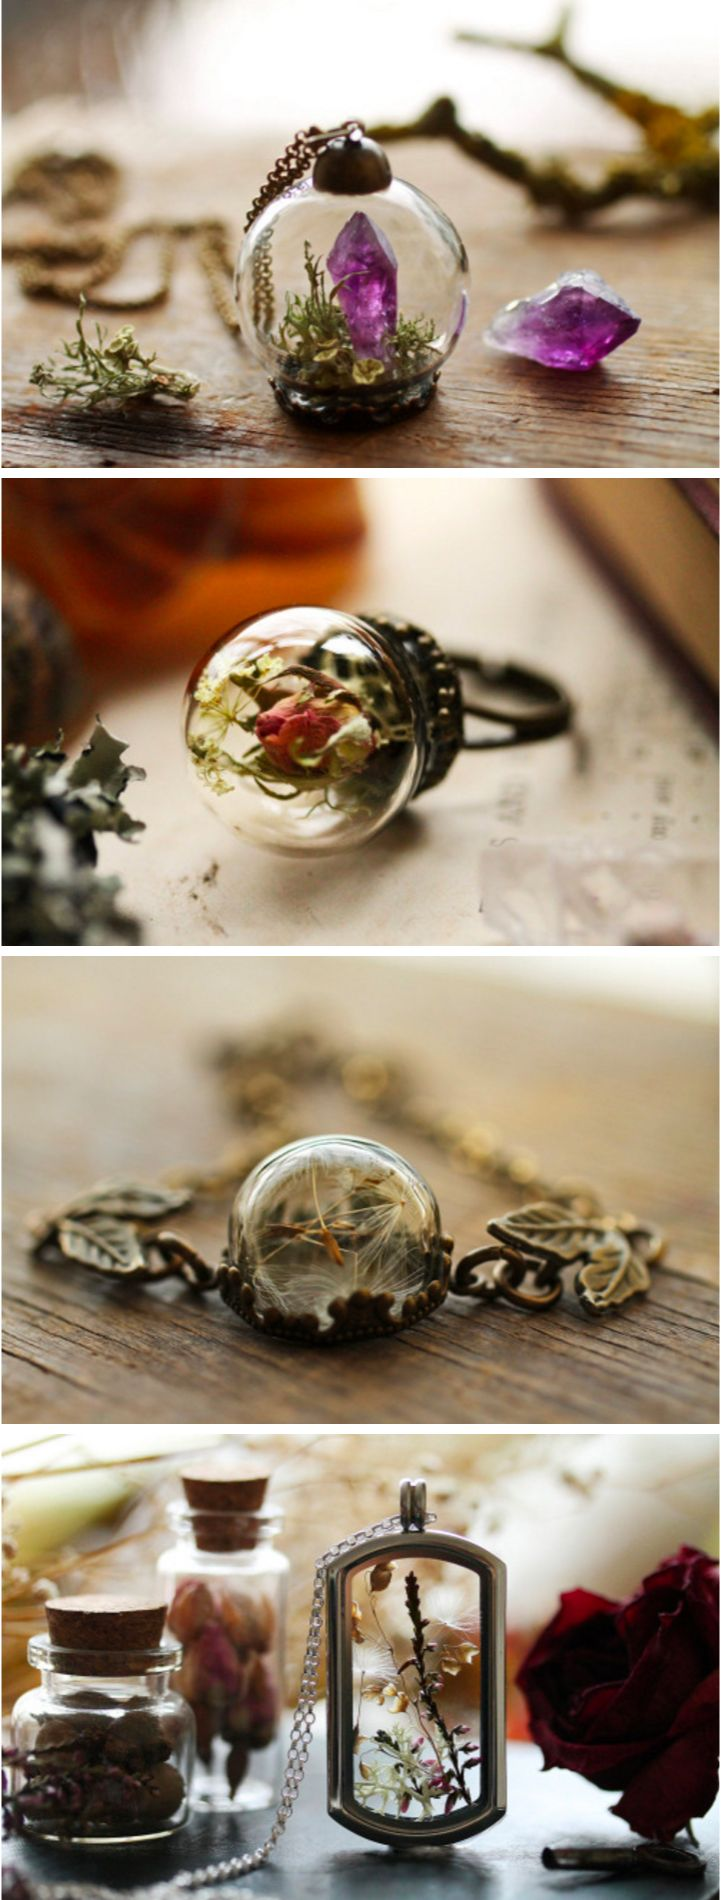 Kay Bells searches landscapes high and low to find the raw materials for her whimsical jewelry. She takes her findings—which include flowers, moss, and crystals—and places them in vintage-style lockets, orbs, rings, and bracelets.